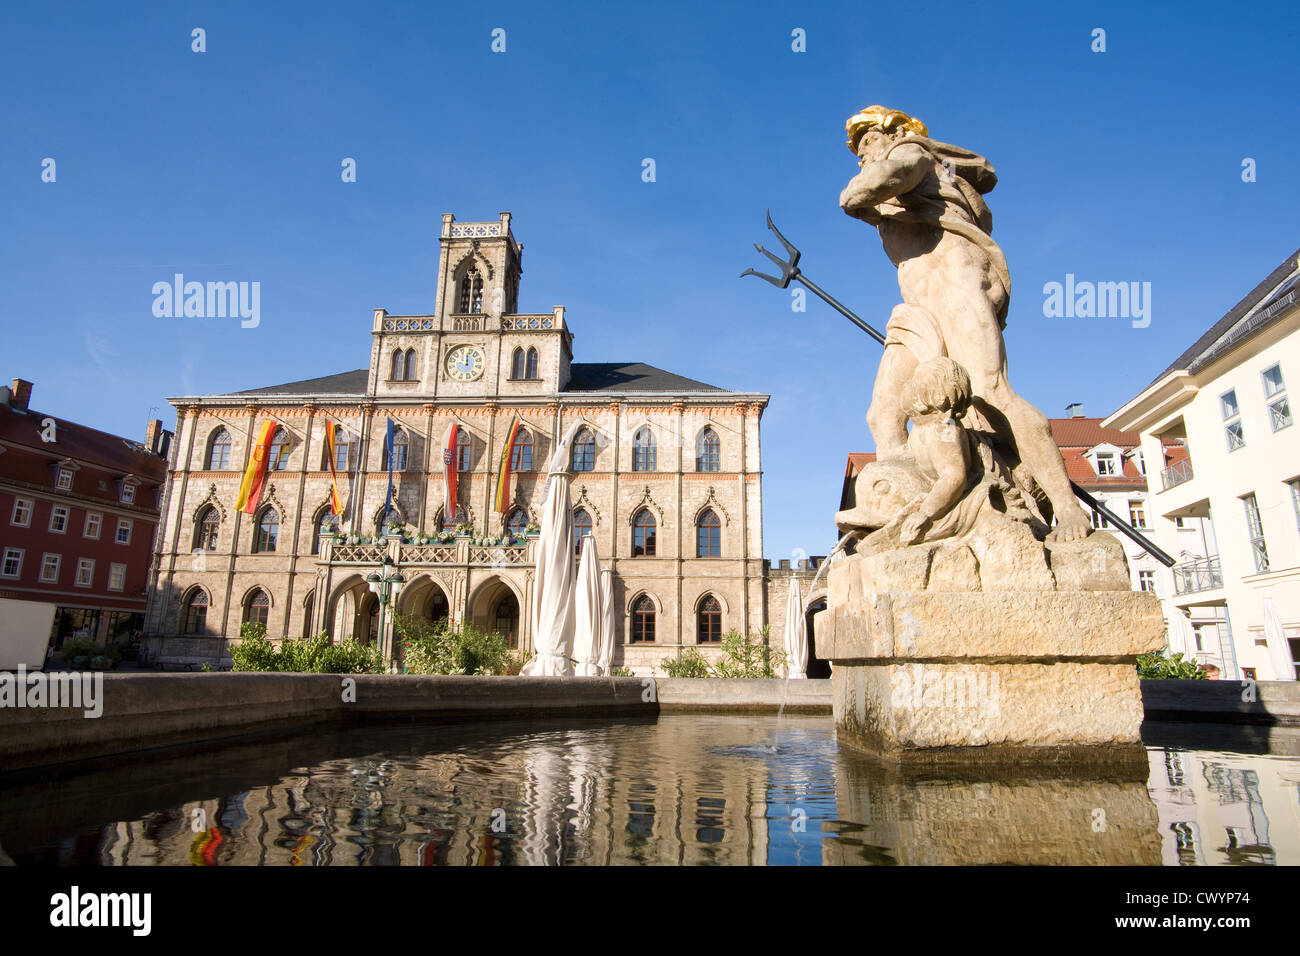 Neptune fountain and town hall on the market square in Weimar, Thuringia, Germany Stock Photo